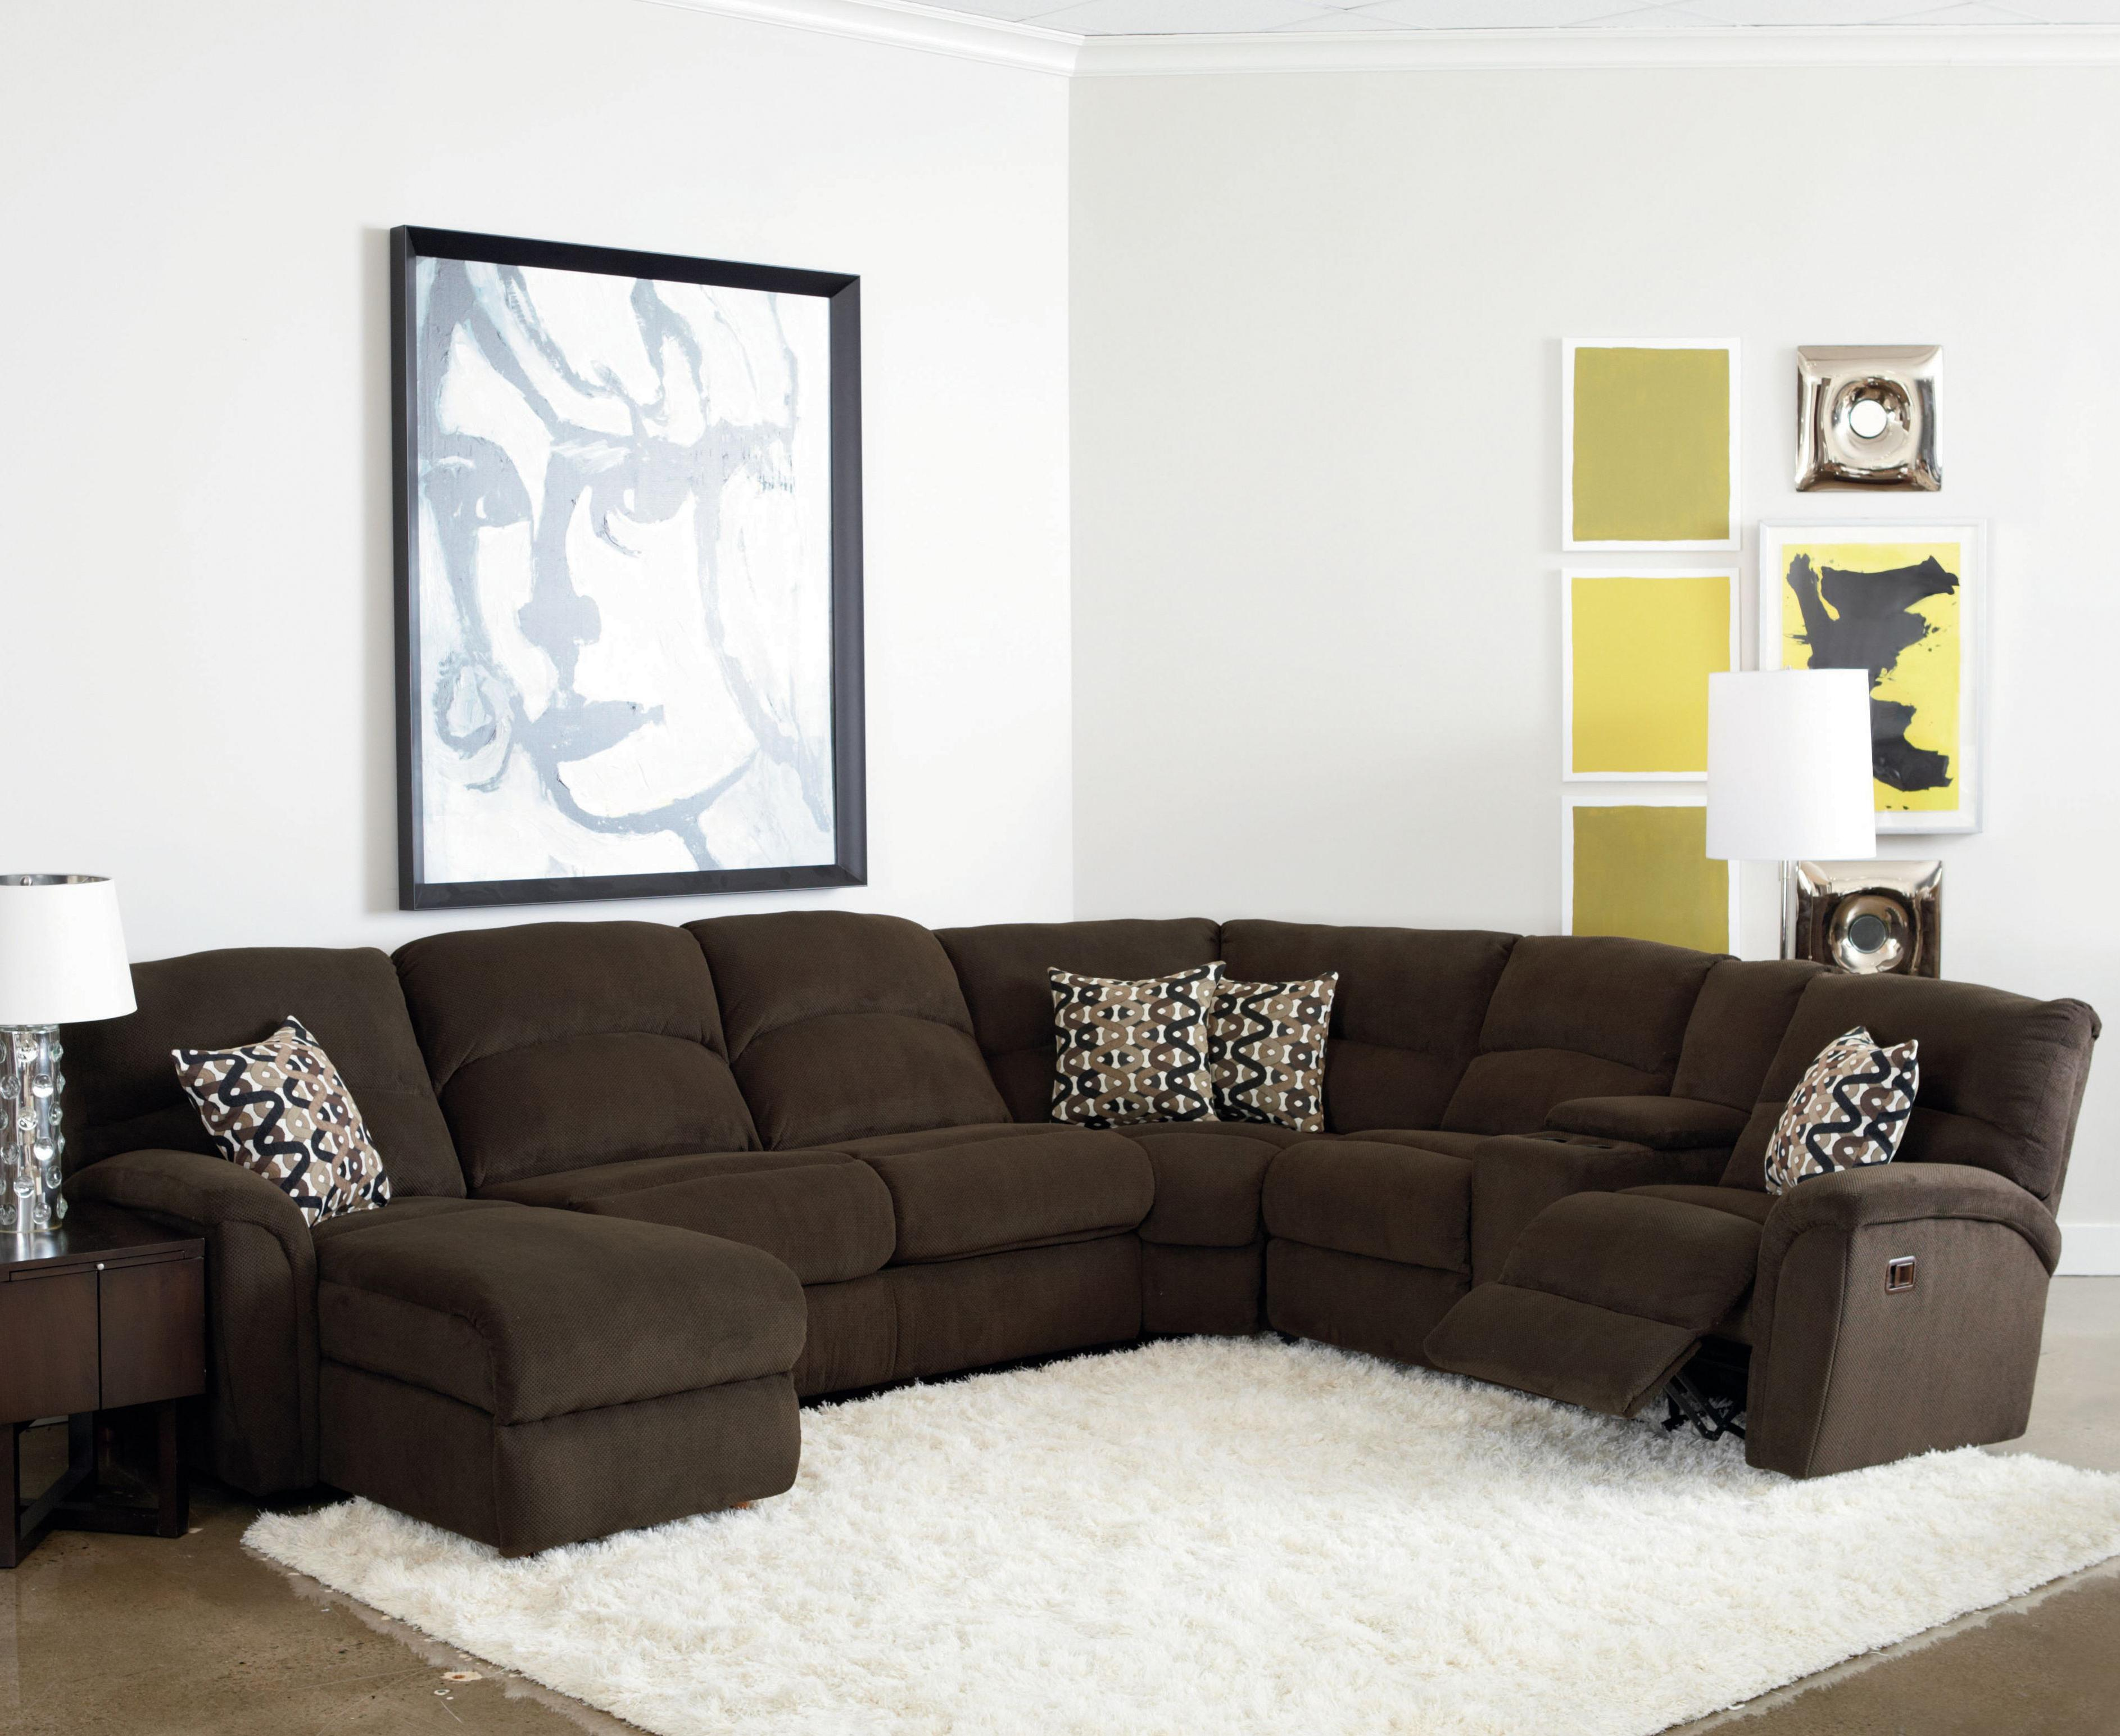 Sectional Sofa Living Room Layout Grand Torino Casual Four Piece Sectional Sofa W Full Sleeper And Drink Console By Lane At Rune S Furniture